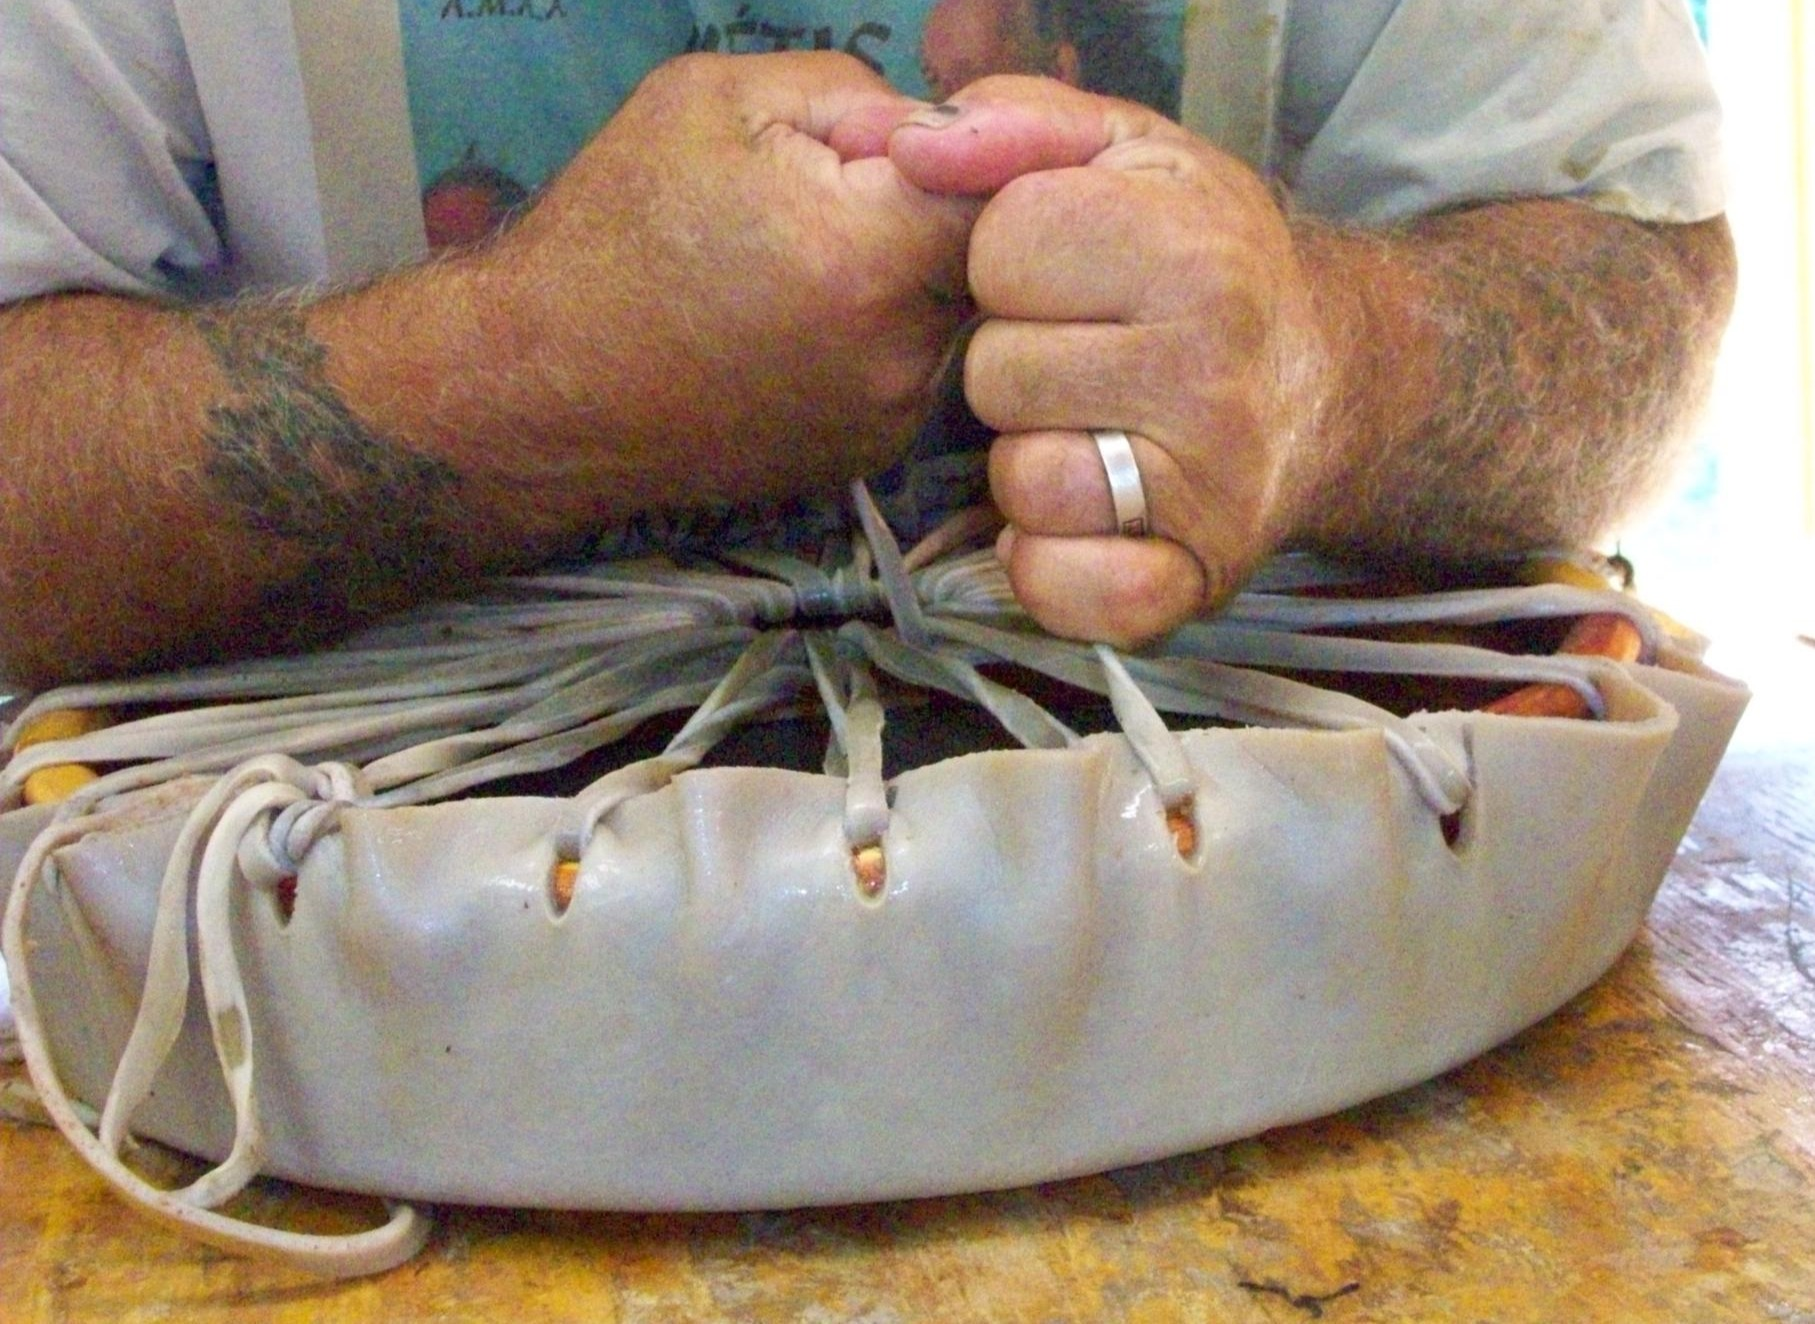 Keith Little Badger tightens Rawhide Heads on Native American Hand Drums